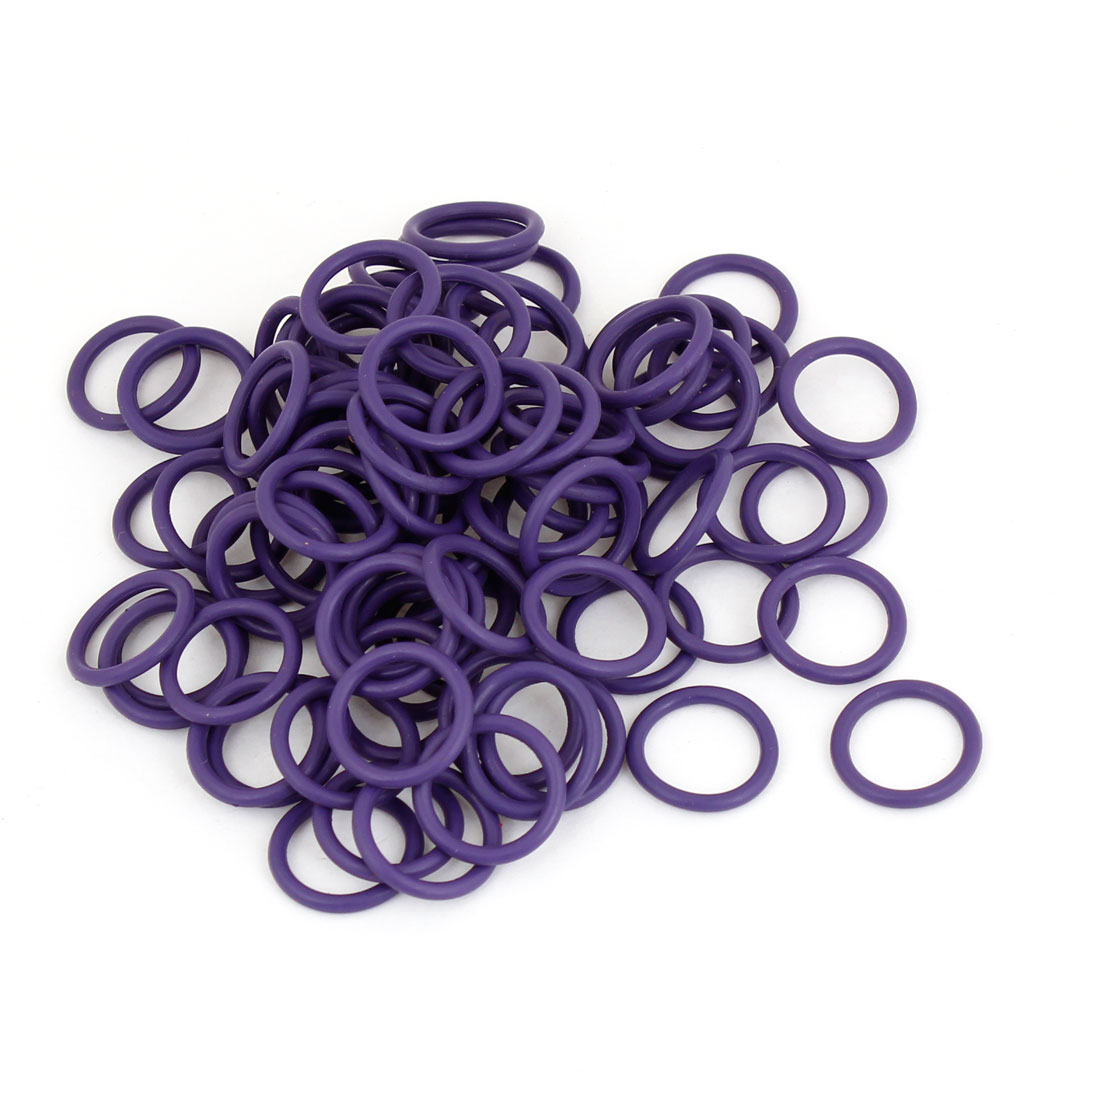 100pcs HNBR Car Truck Van Air Con A/C Purple Seal O Ring 14 x 12 x 1.5mm